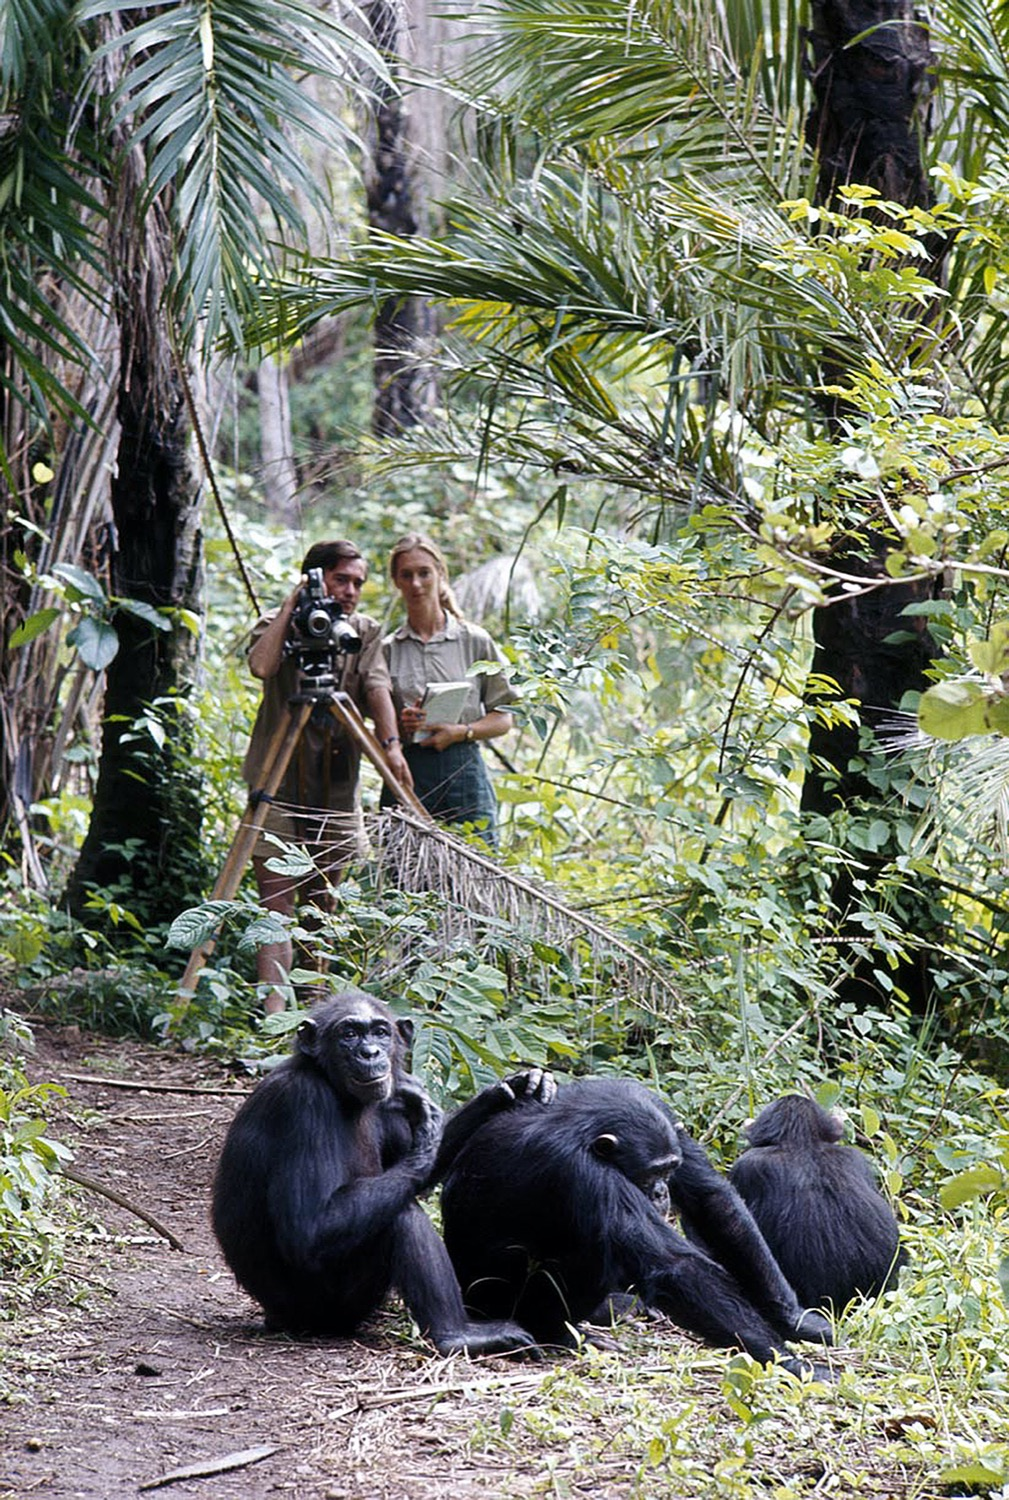 two researcher, a man and woman, observe and film a group of chimps in the jungle from afar